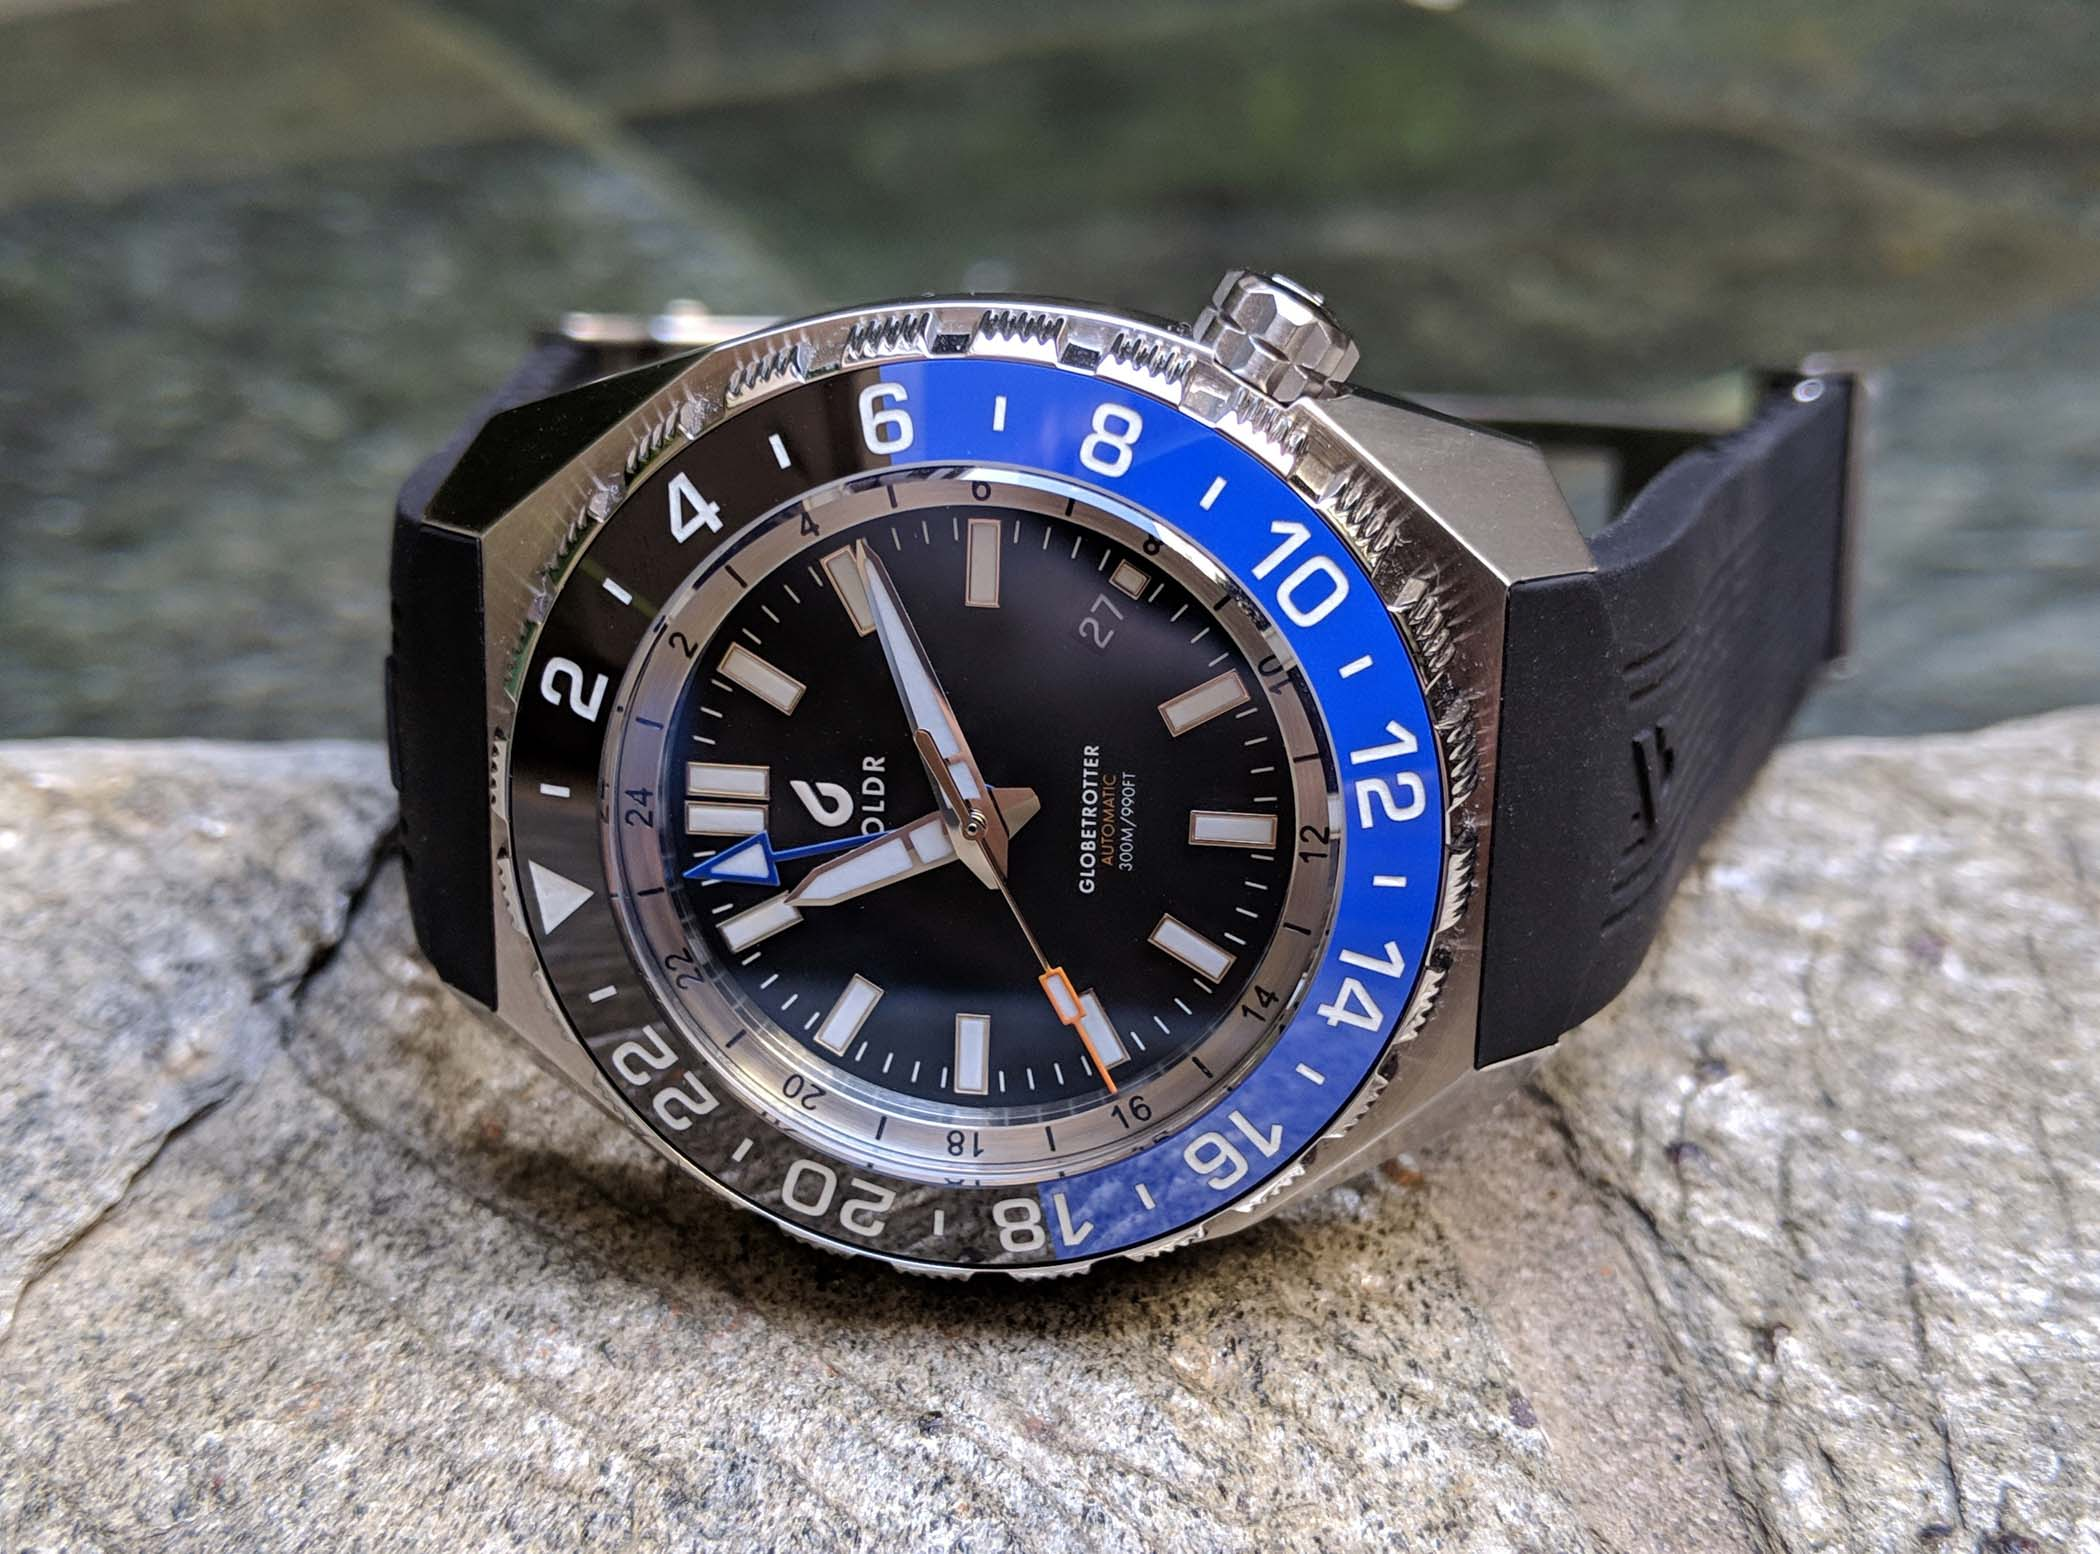 BOLDR Globetrotter GMT review - 4